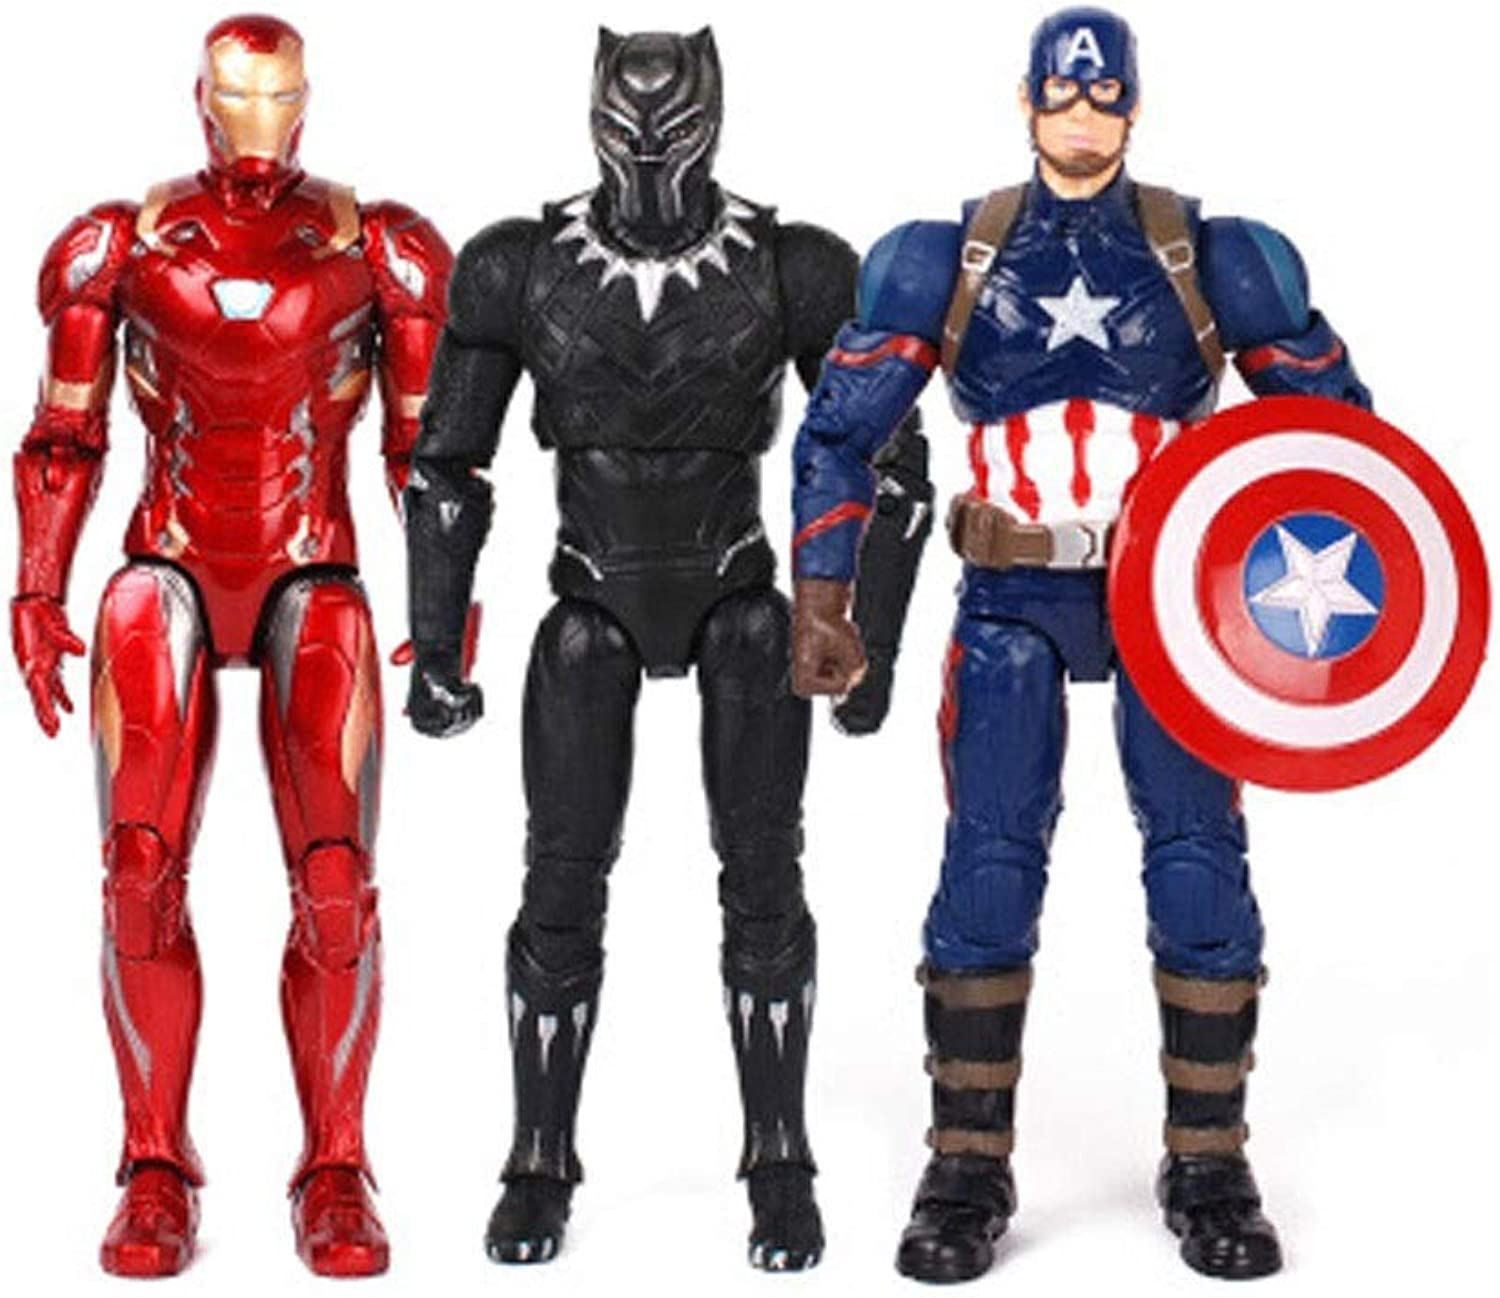 Spielzeug - Marvel Toys - Avengers 3 4-Joints - Spider-Man Panther Captain America Iron Man (Farbe   H)